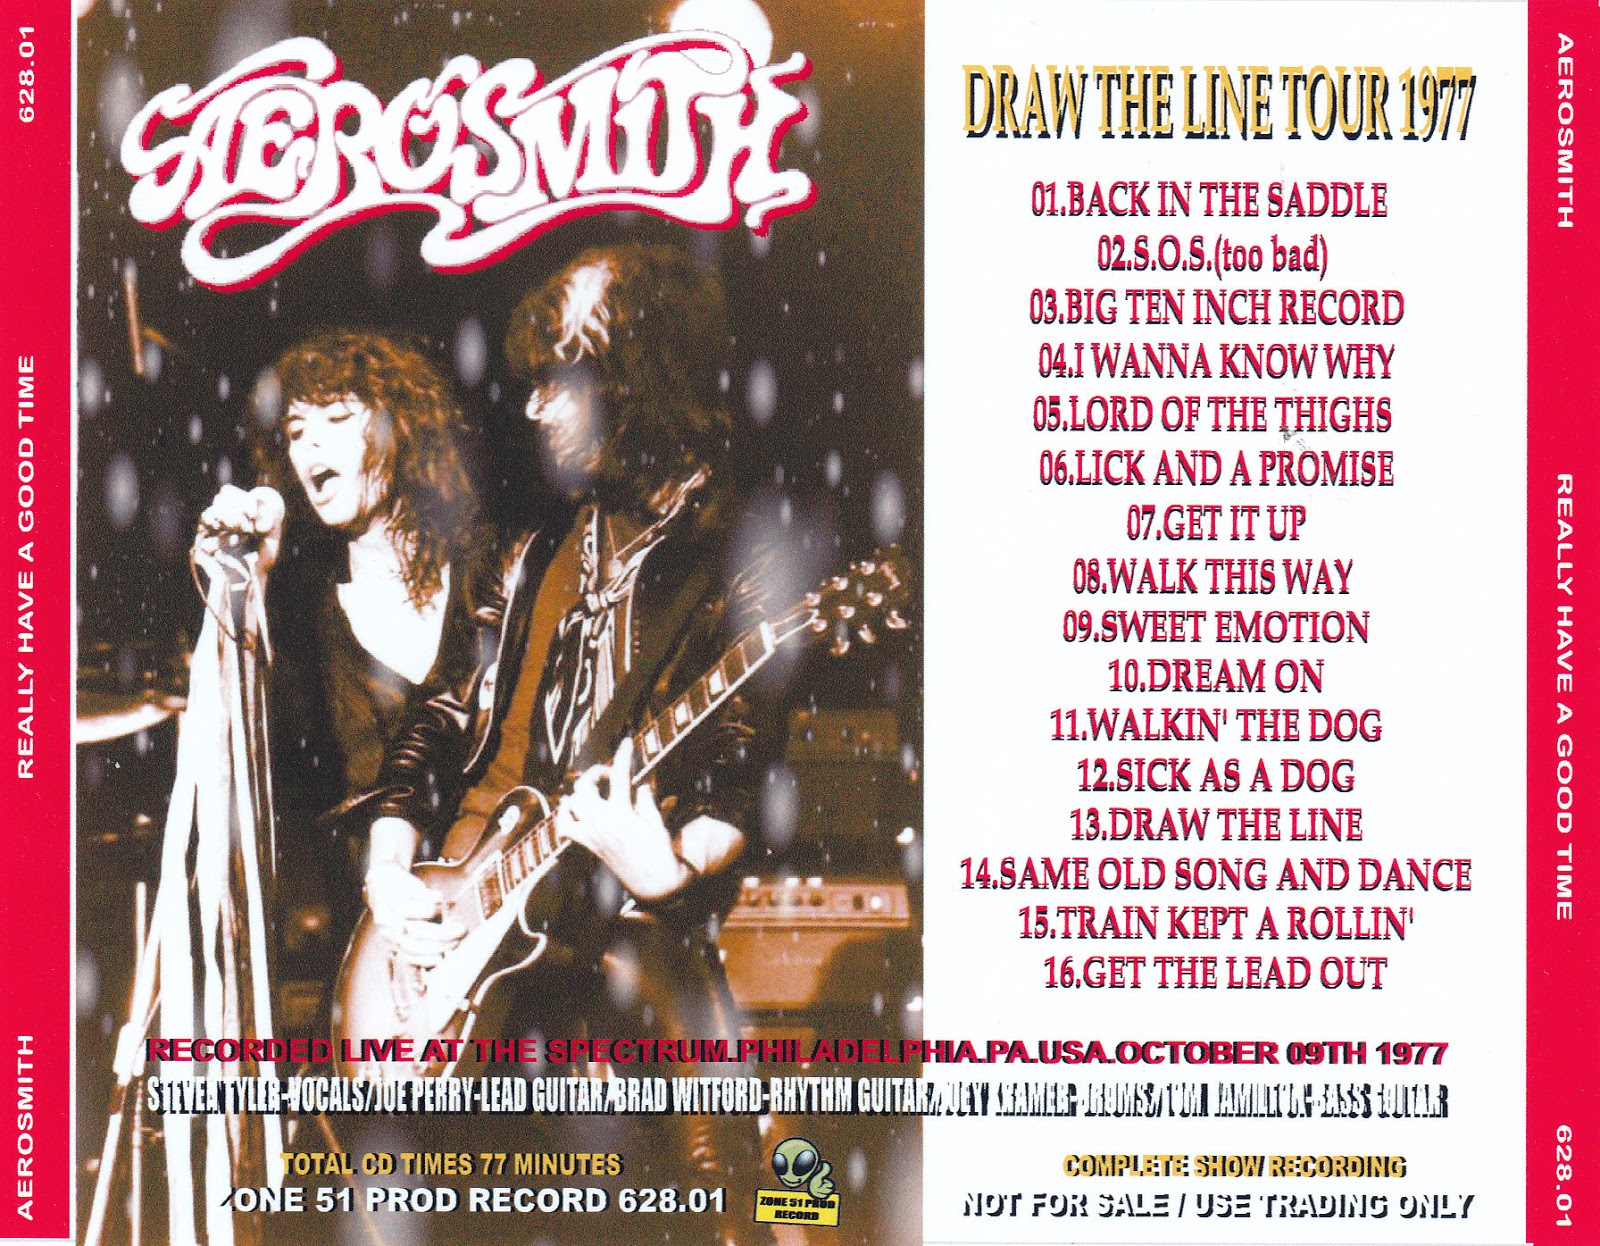 Aerosmith Bootlegs Cover Arts Really Have A Good Time